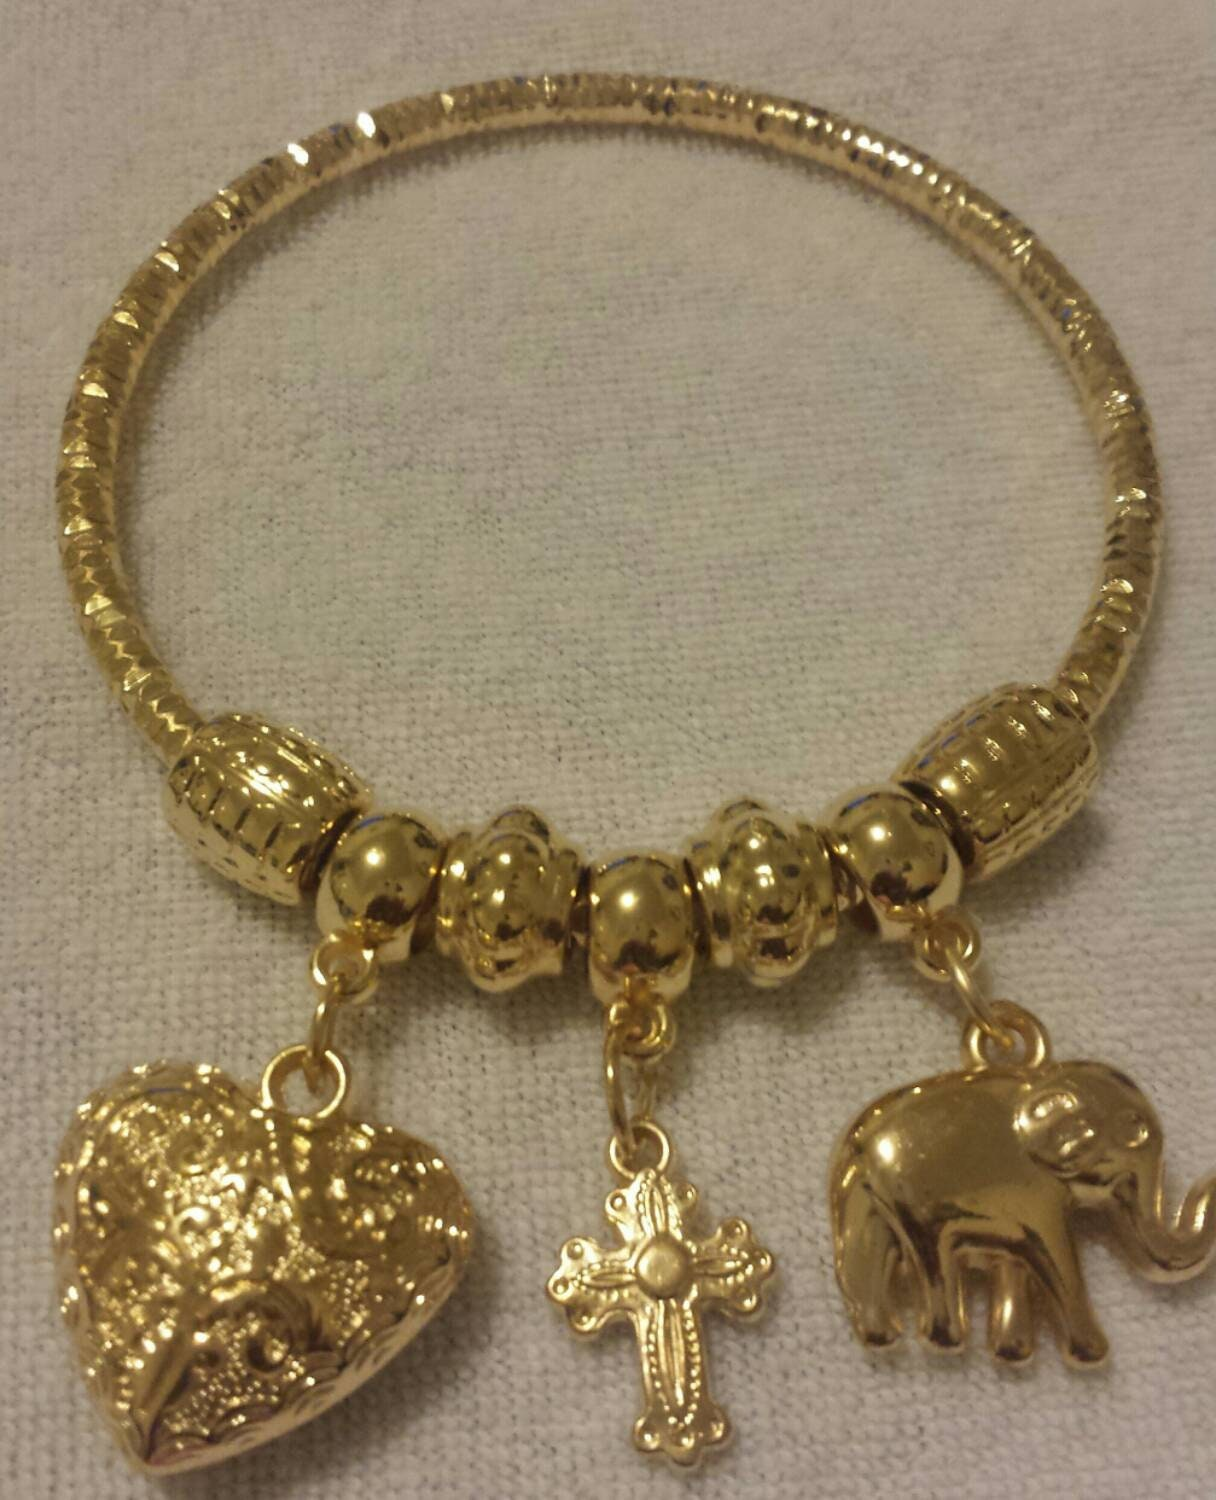 Gold Bangle Bracelet Charm Bracelet Dangle Charm Bracelets Elephant Bracelet Cross Bracelet Heart Bracelet Gold Charms Gifts for Her